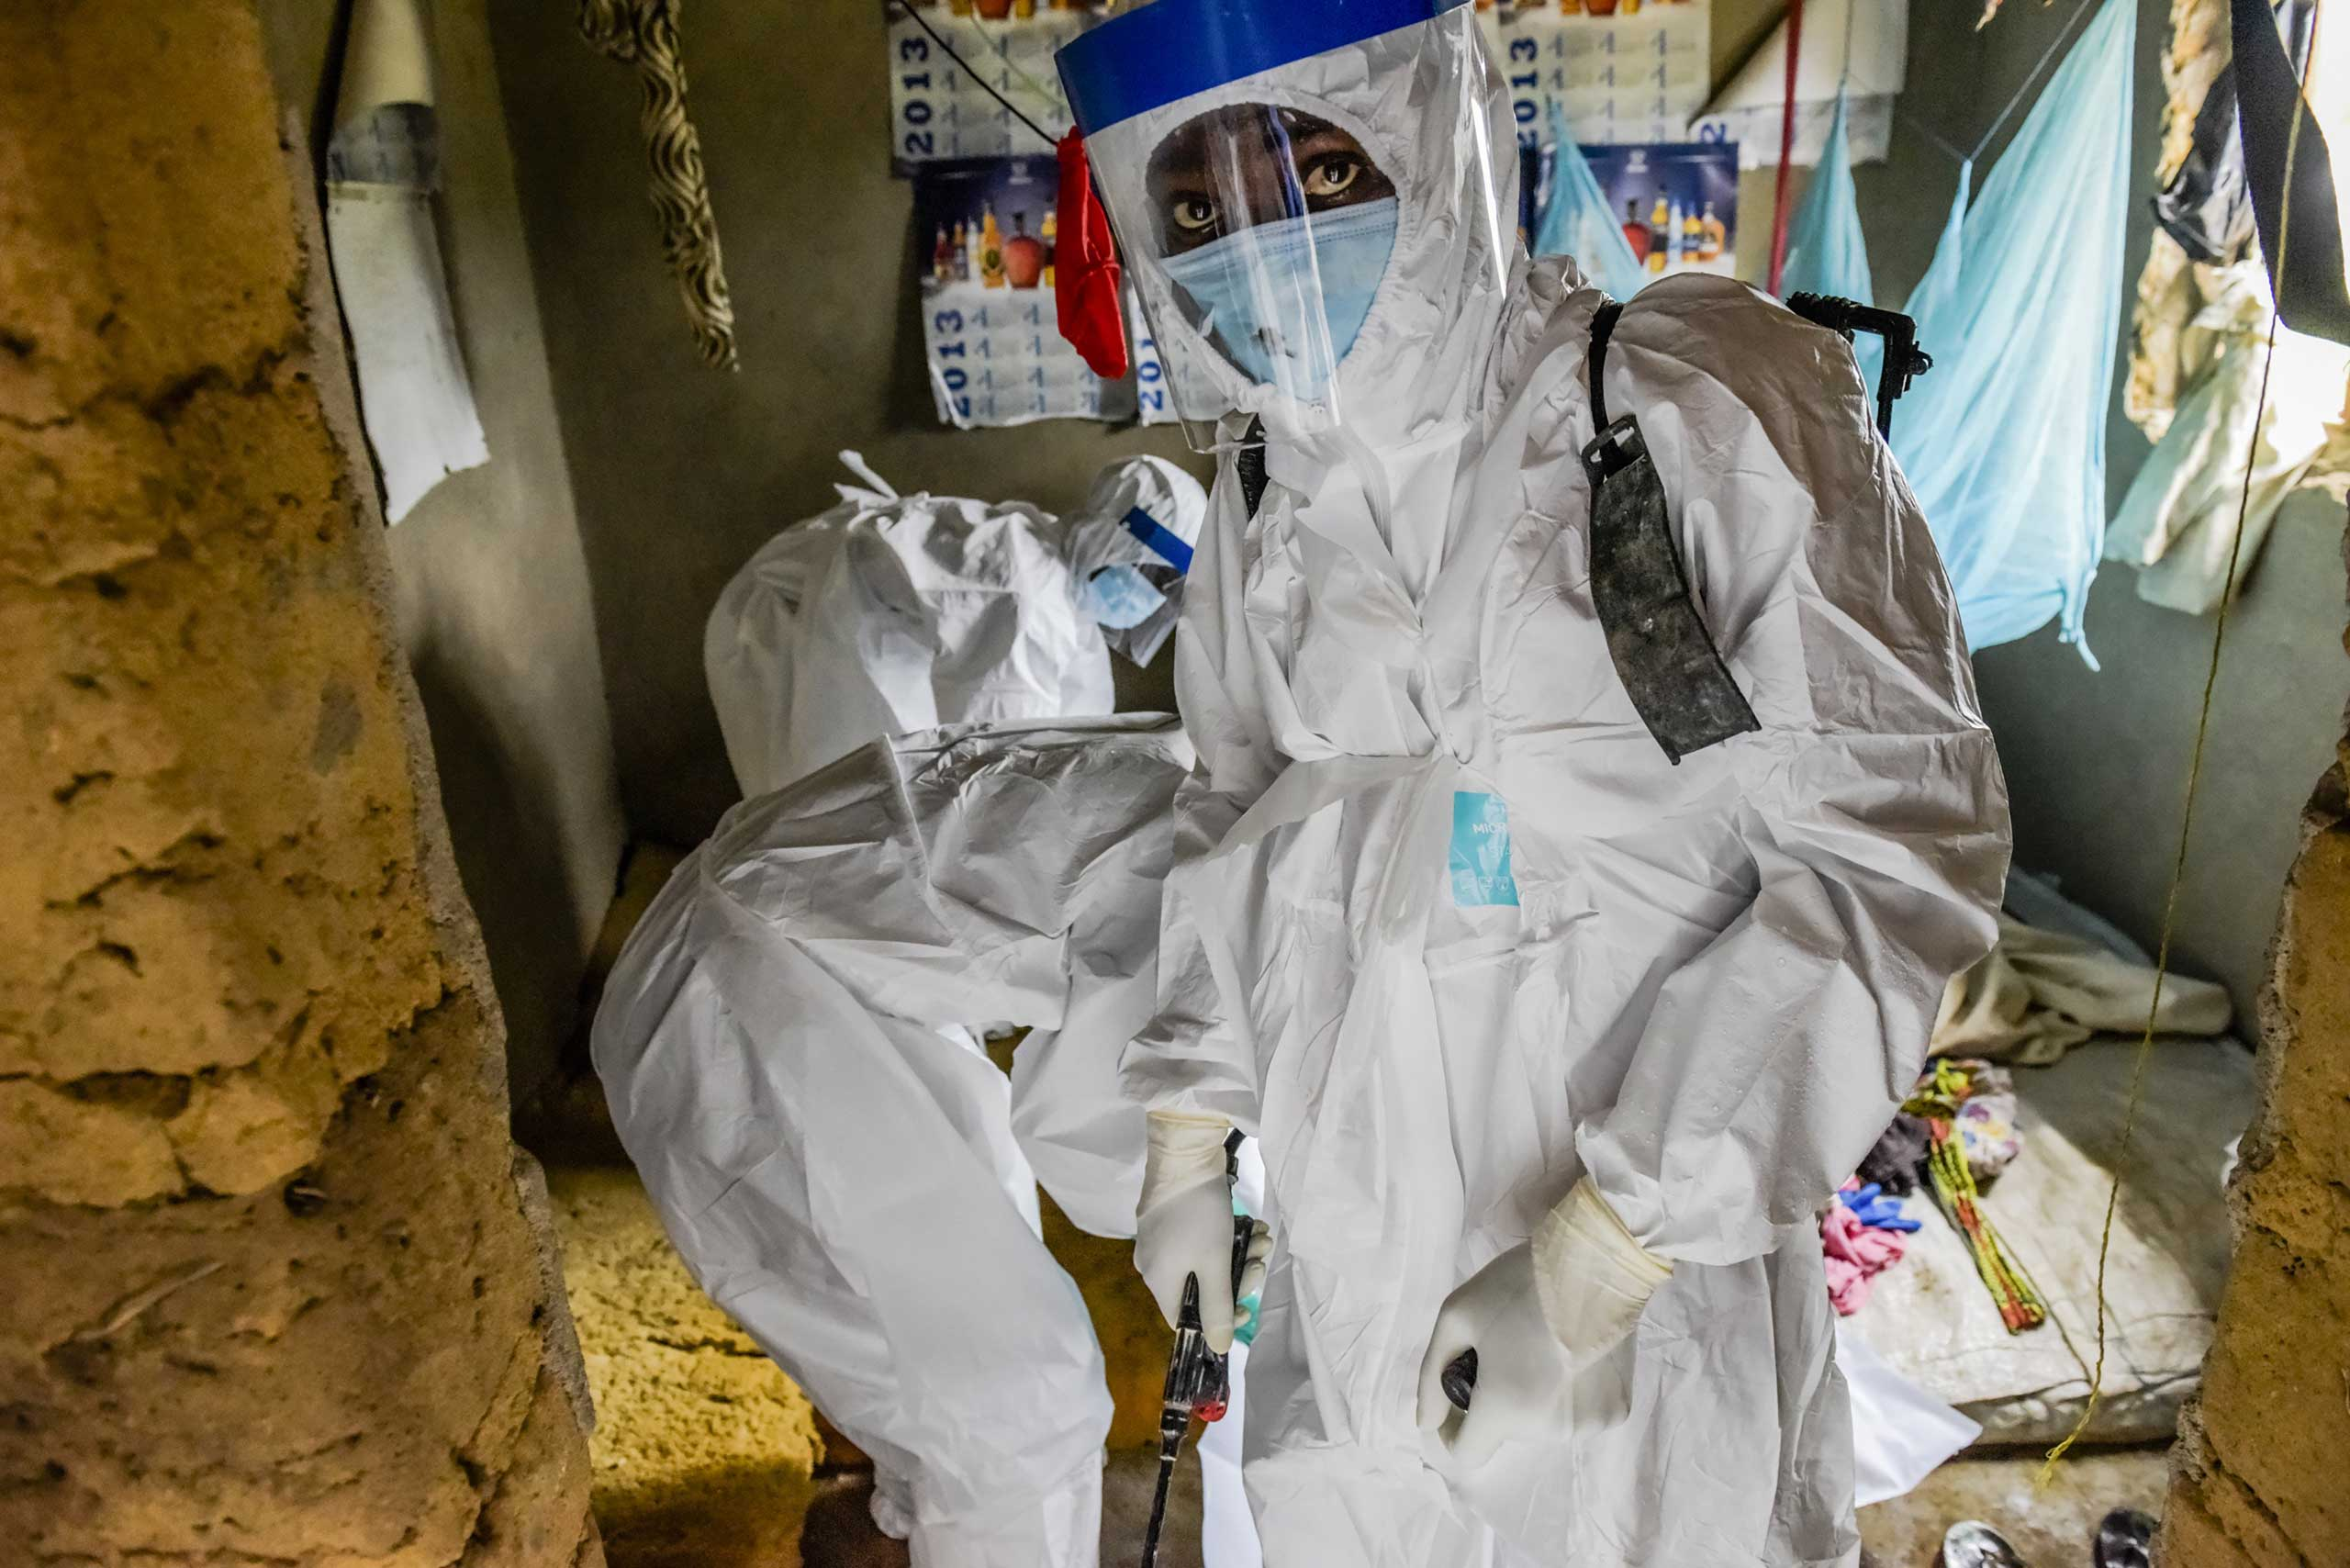 A burial team extracts the body of Isatu Sesay, 16, an Ebola victim, from her home in Kissi Town, Sierra Leone, Nov. 22, 2014.